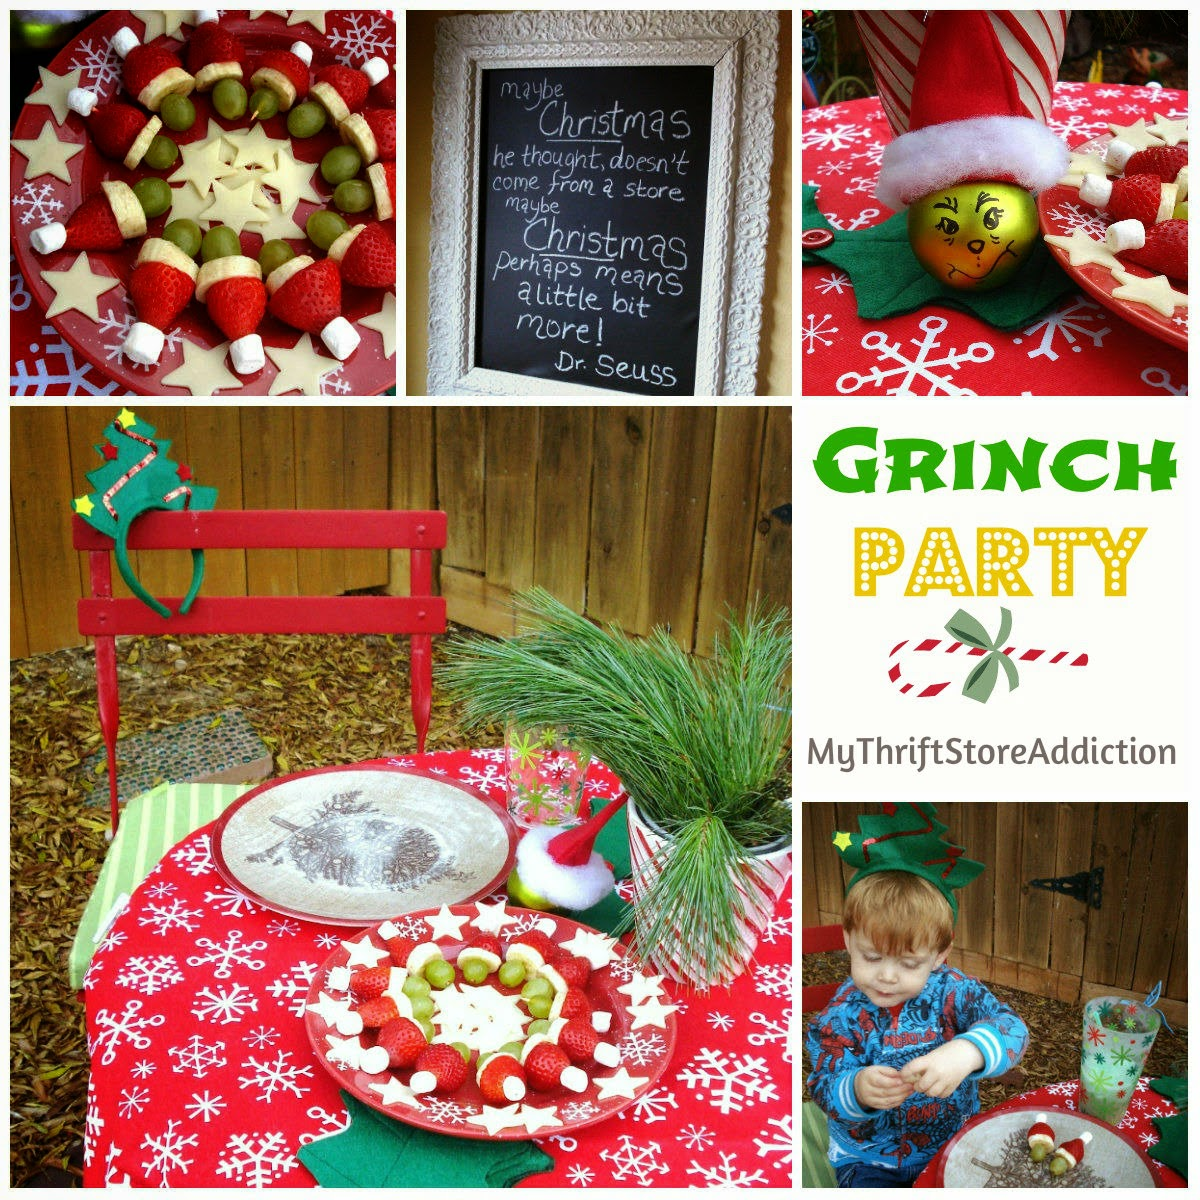 Grinch party crafts and recipes